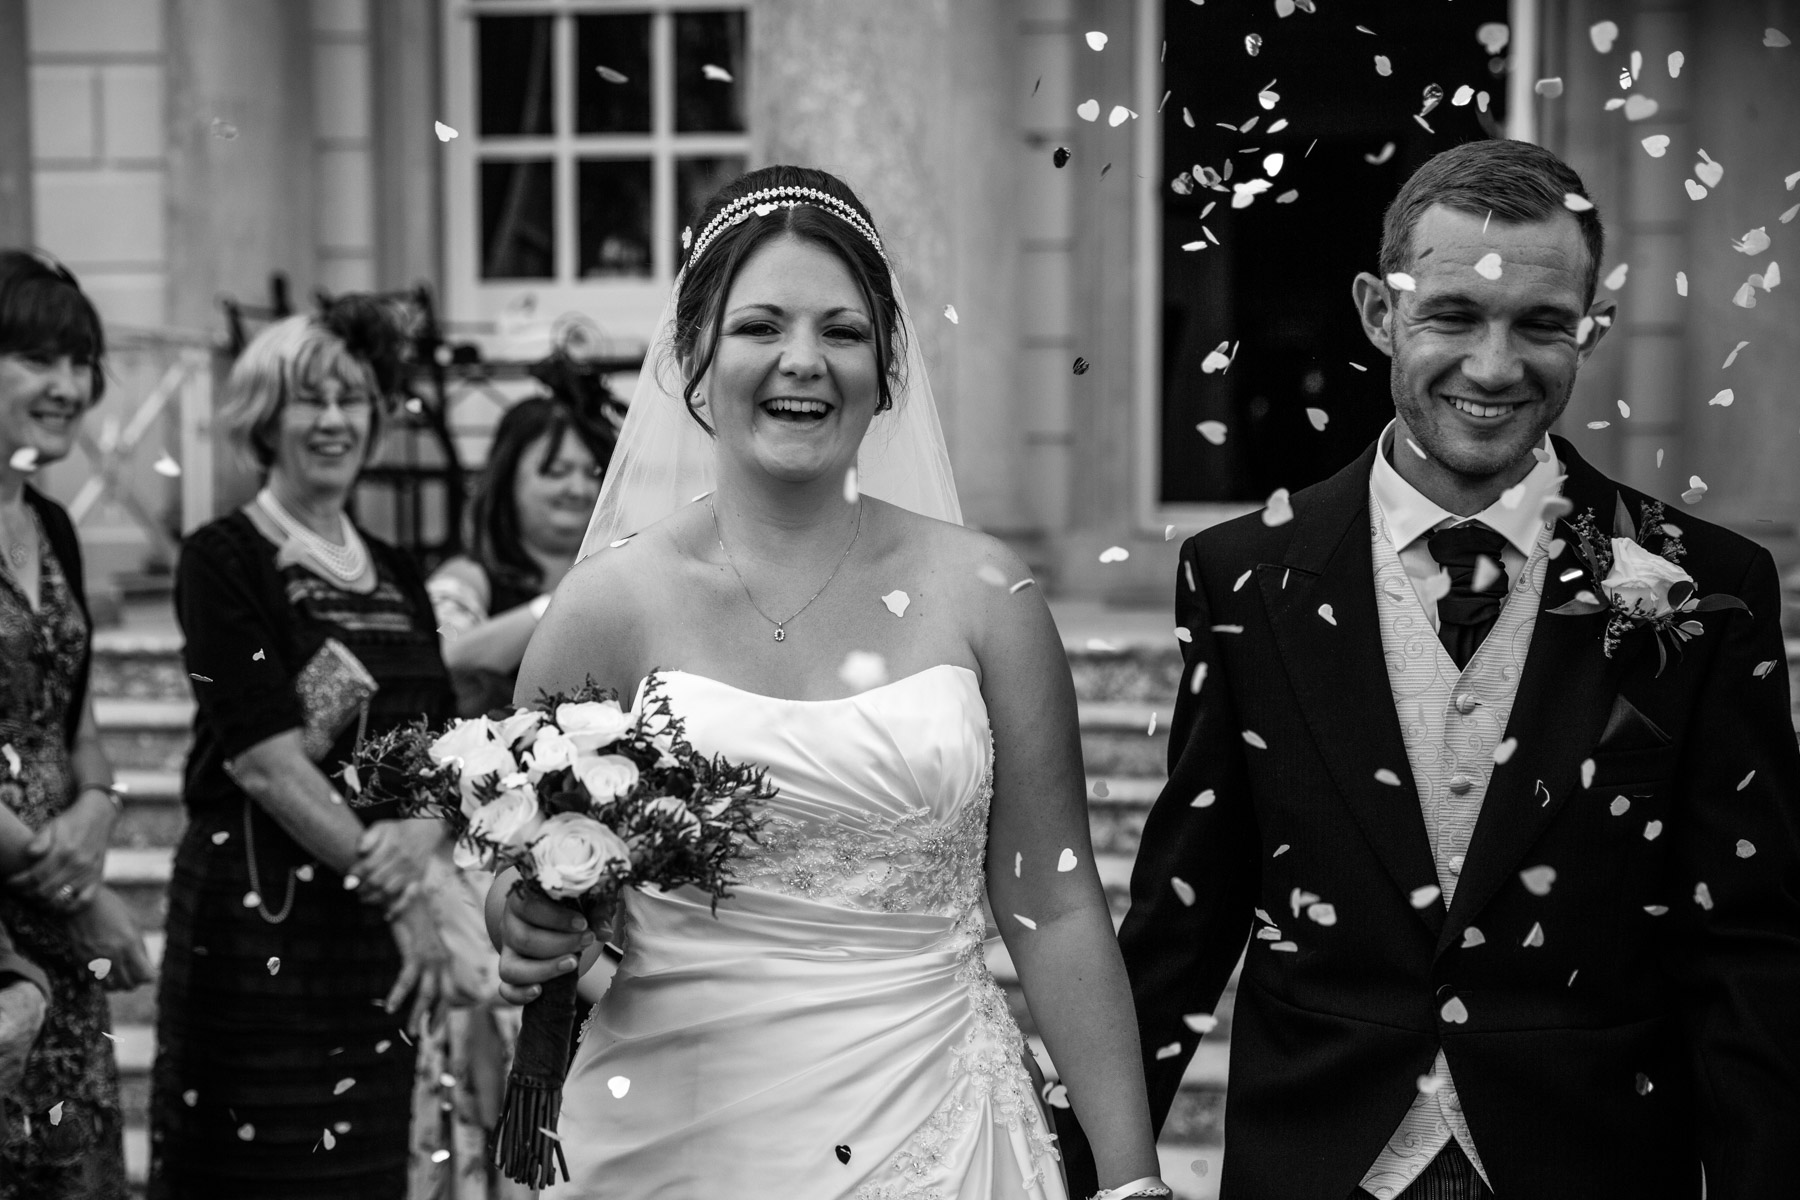 Sussex wedding photography Richard Murgatroyd Buxted Park Hotel